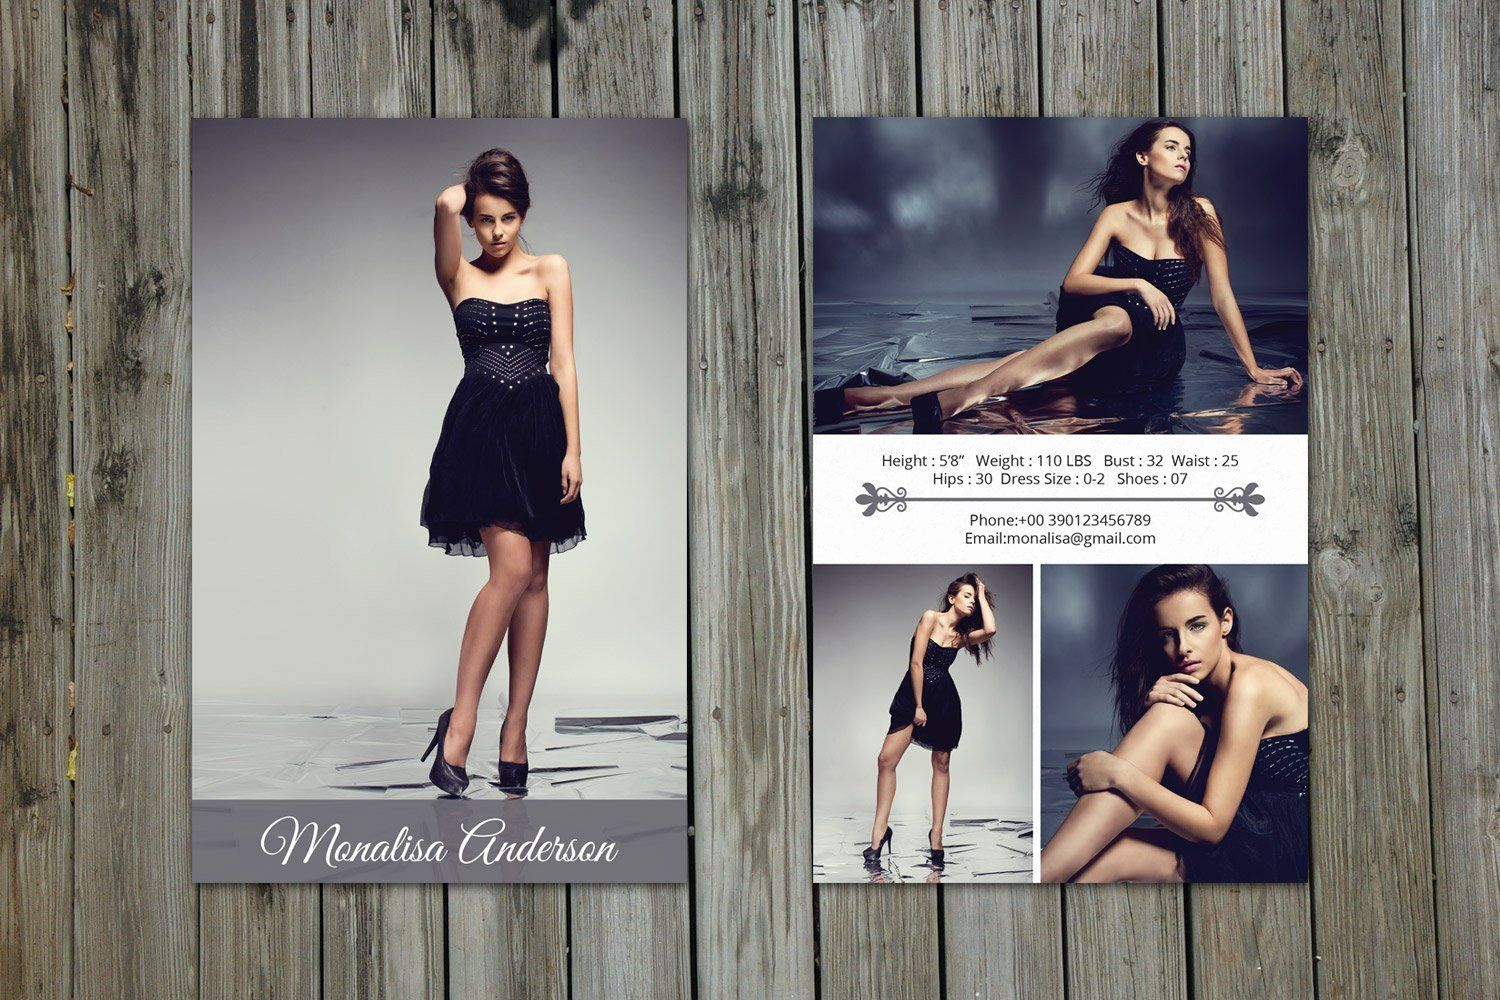 Comp Card Template Photoshop Awesome Modeling P Card Template Model P Card Shop Model Comp Card Card Templates Free Card Templates